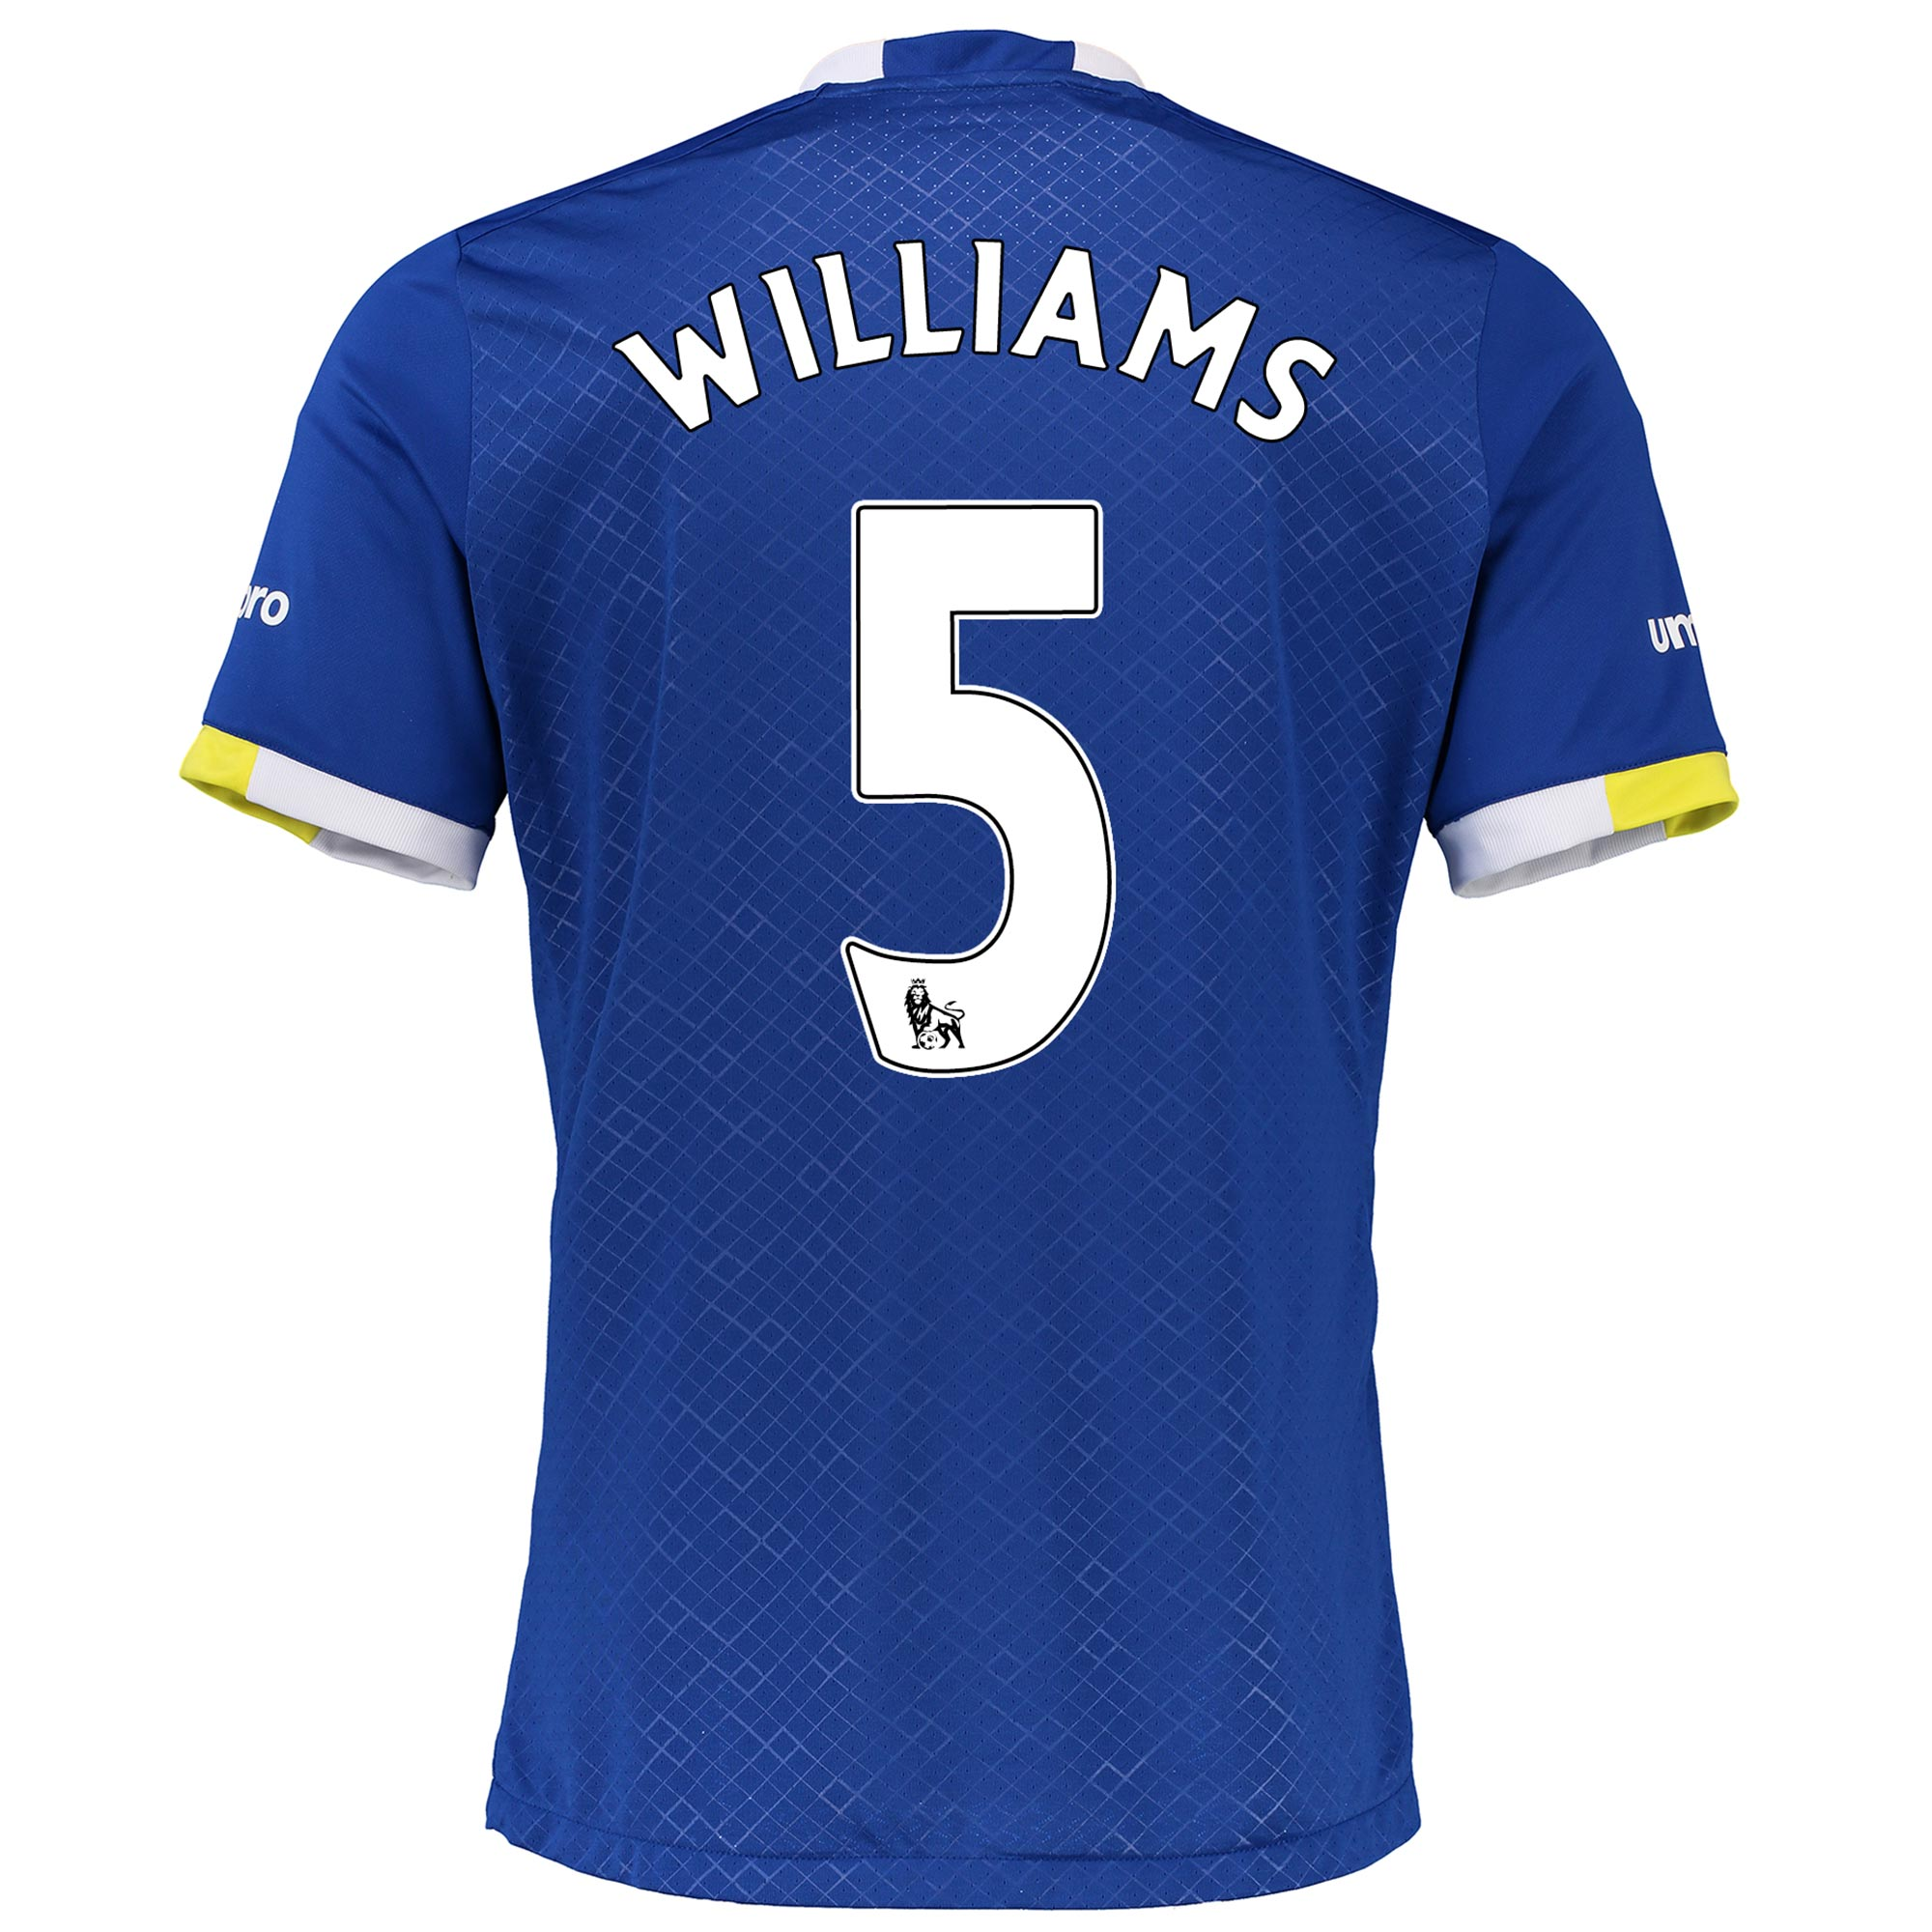 Everton Home Infant Kit 2016/17 with Williams 5 printing